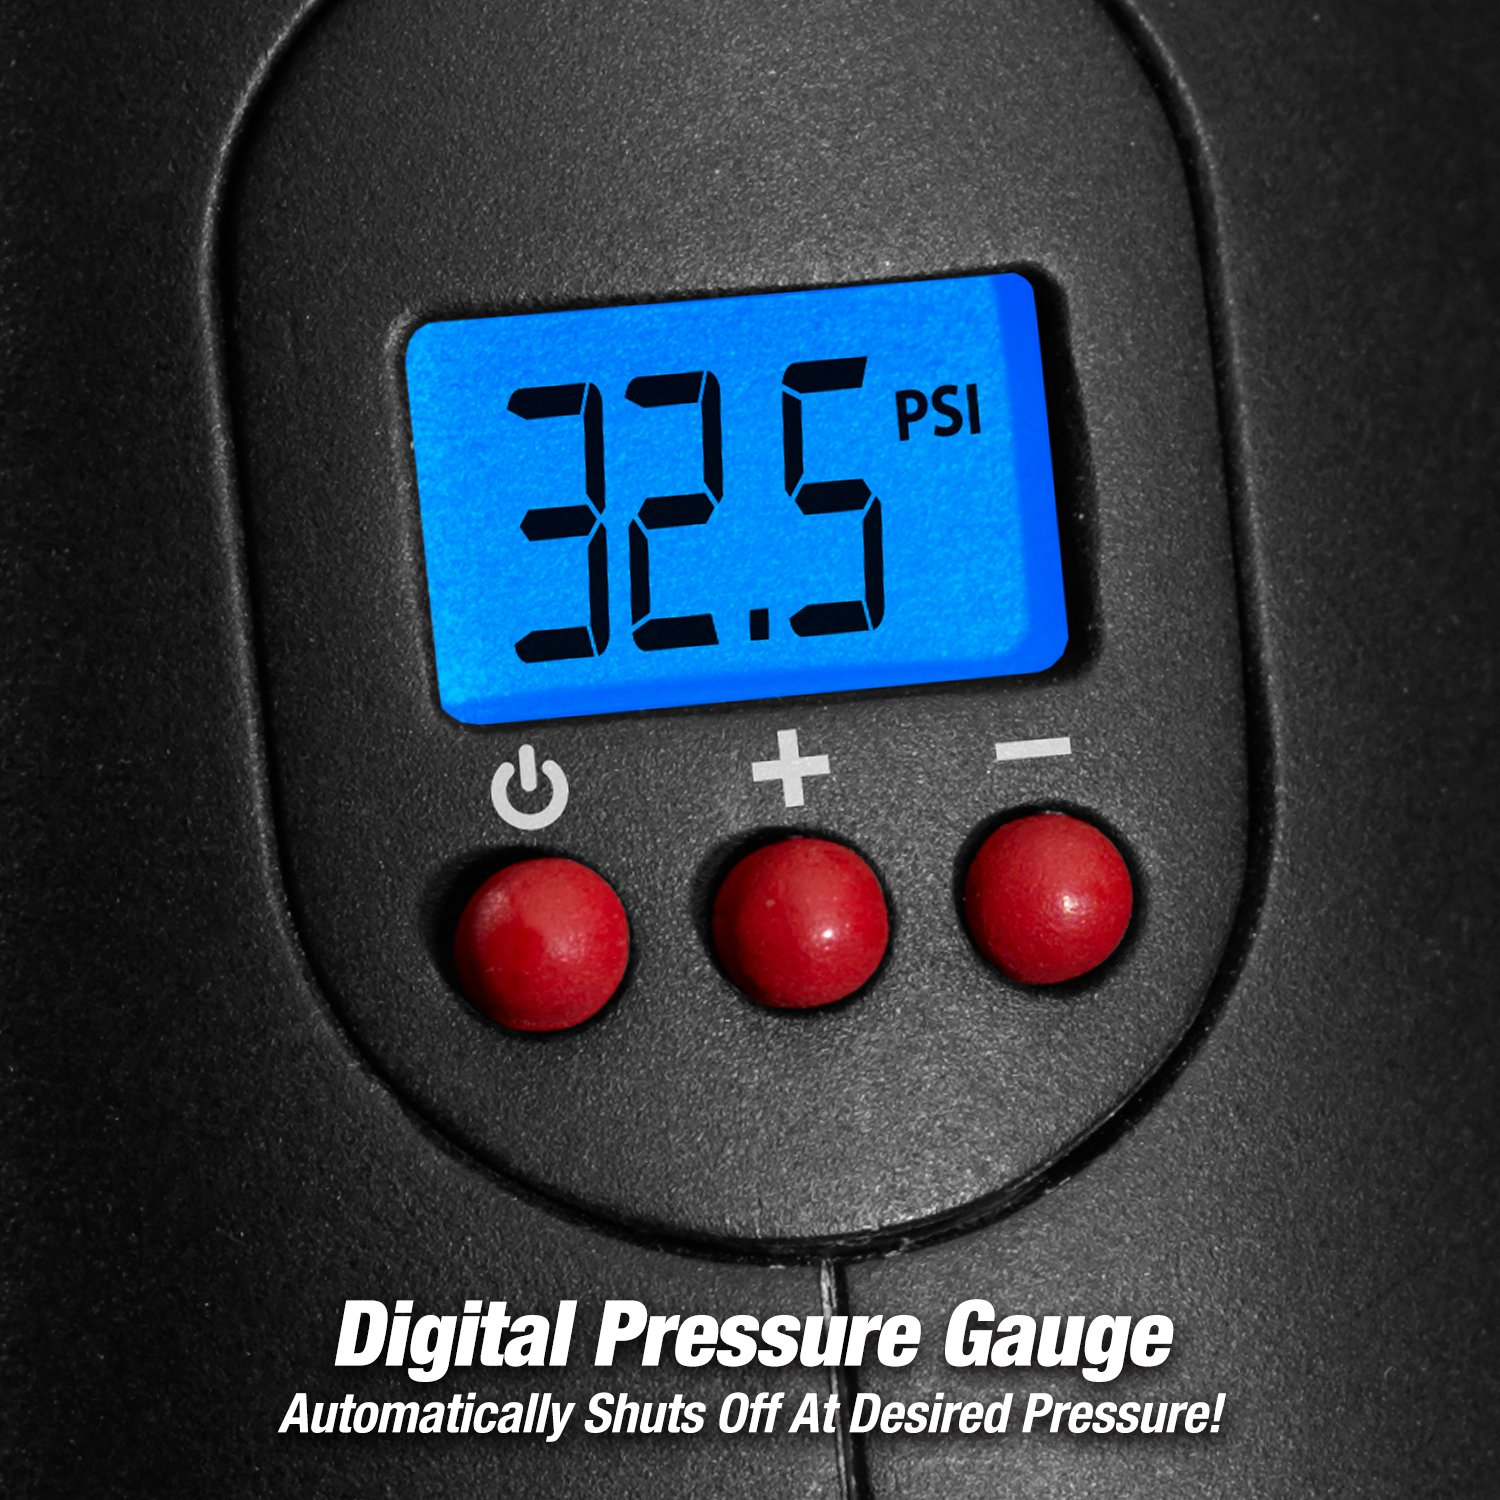 Built in LED Light Easy to Read Digital Pressure Gauge ONTEL Air Hawk Pro Automatic Cordless Tire Inflator Portable Air Compressor